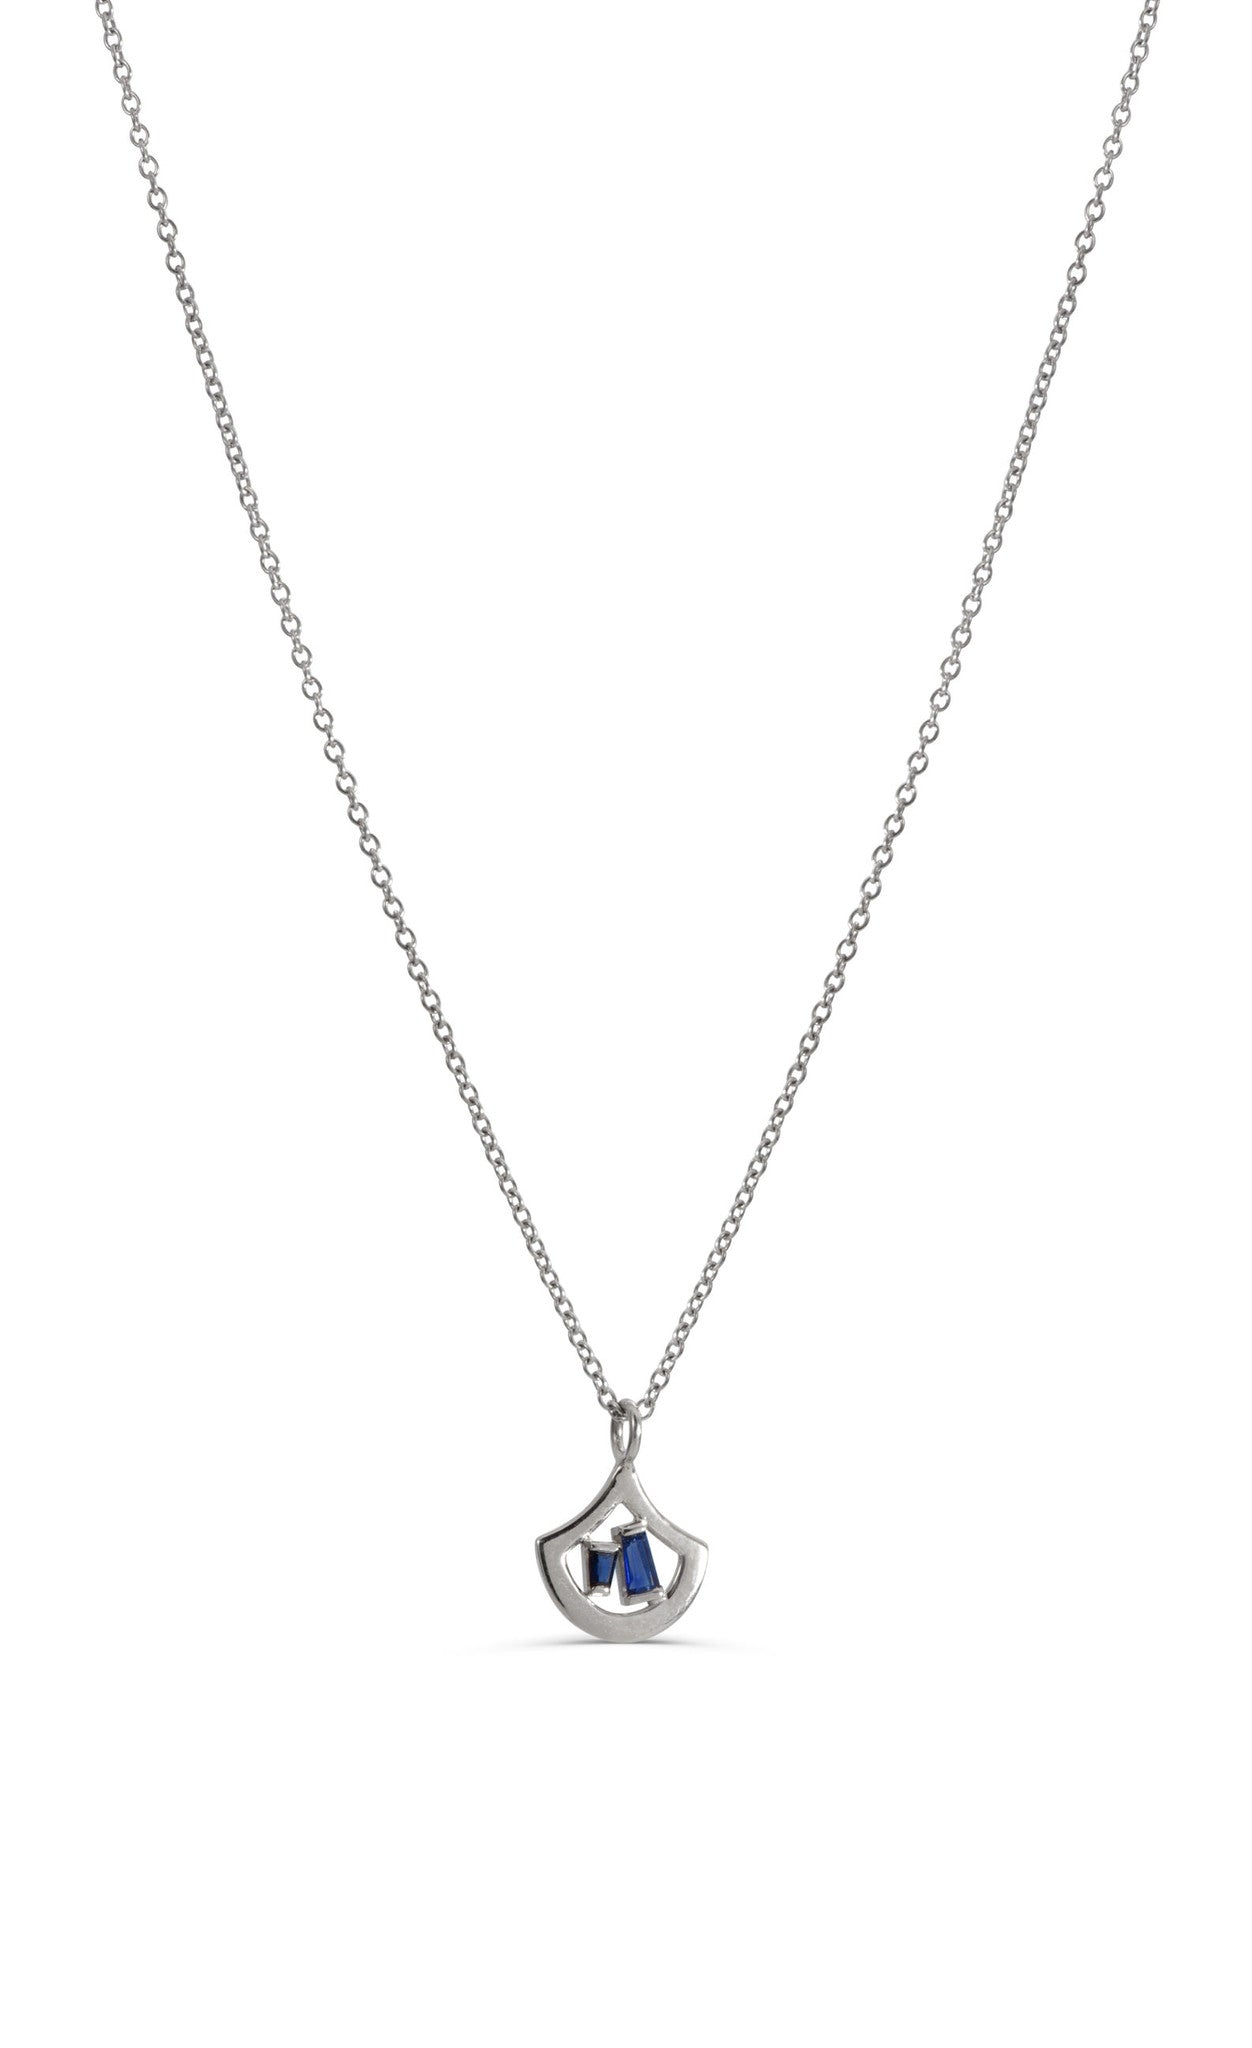 The Stella 14 KT White Gold sapphire necklace by KarenAsh New York